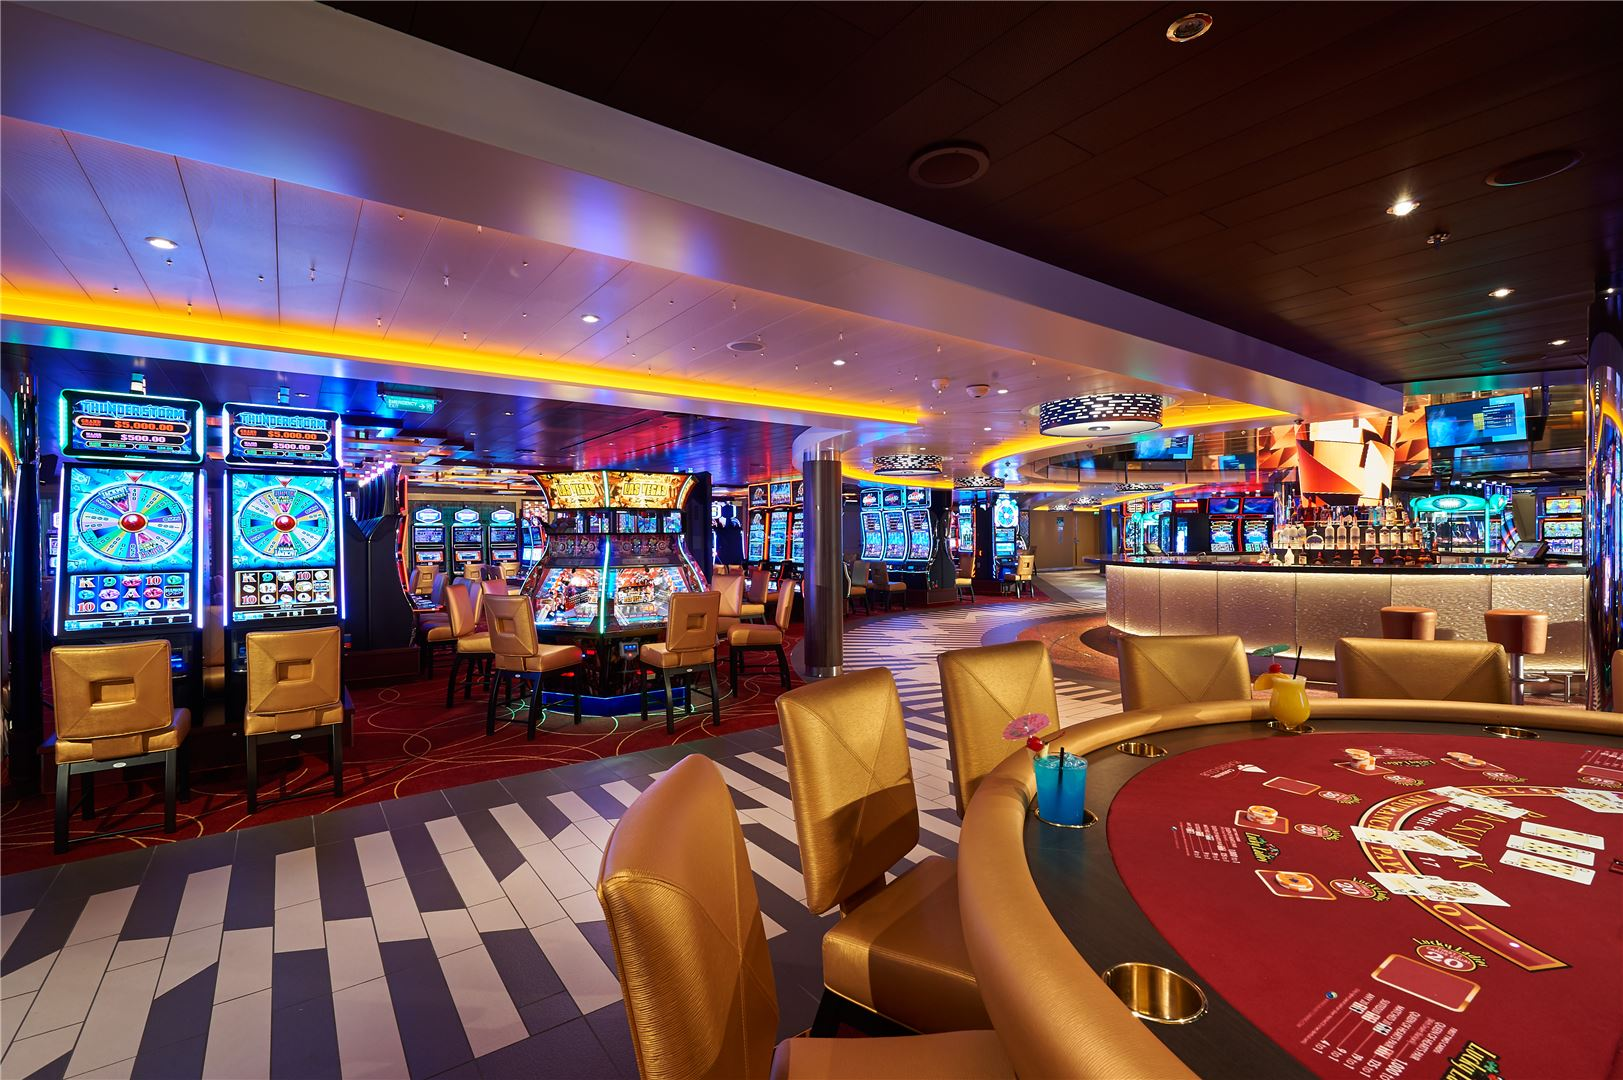 Carnival Cruise Line Updates Players Club Casino Rewards Program